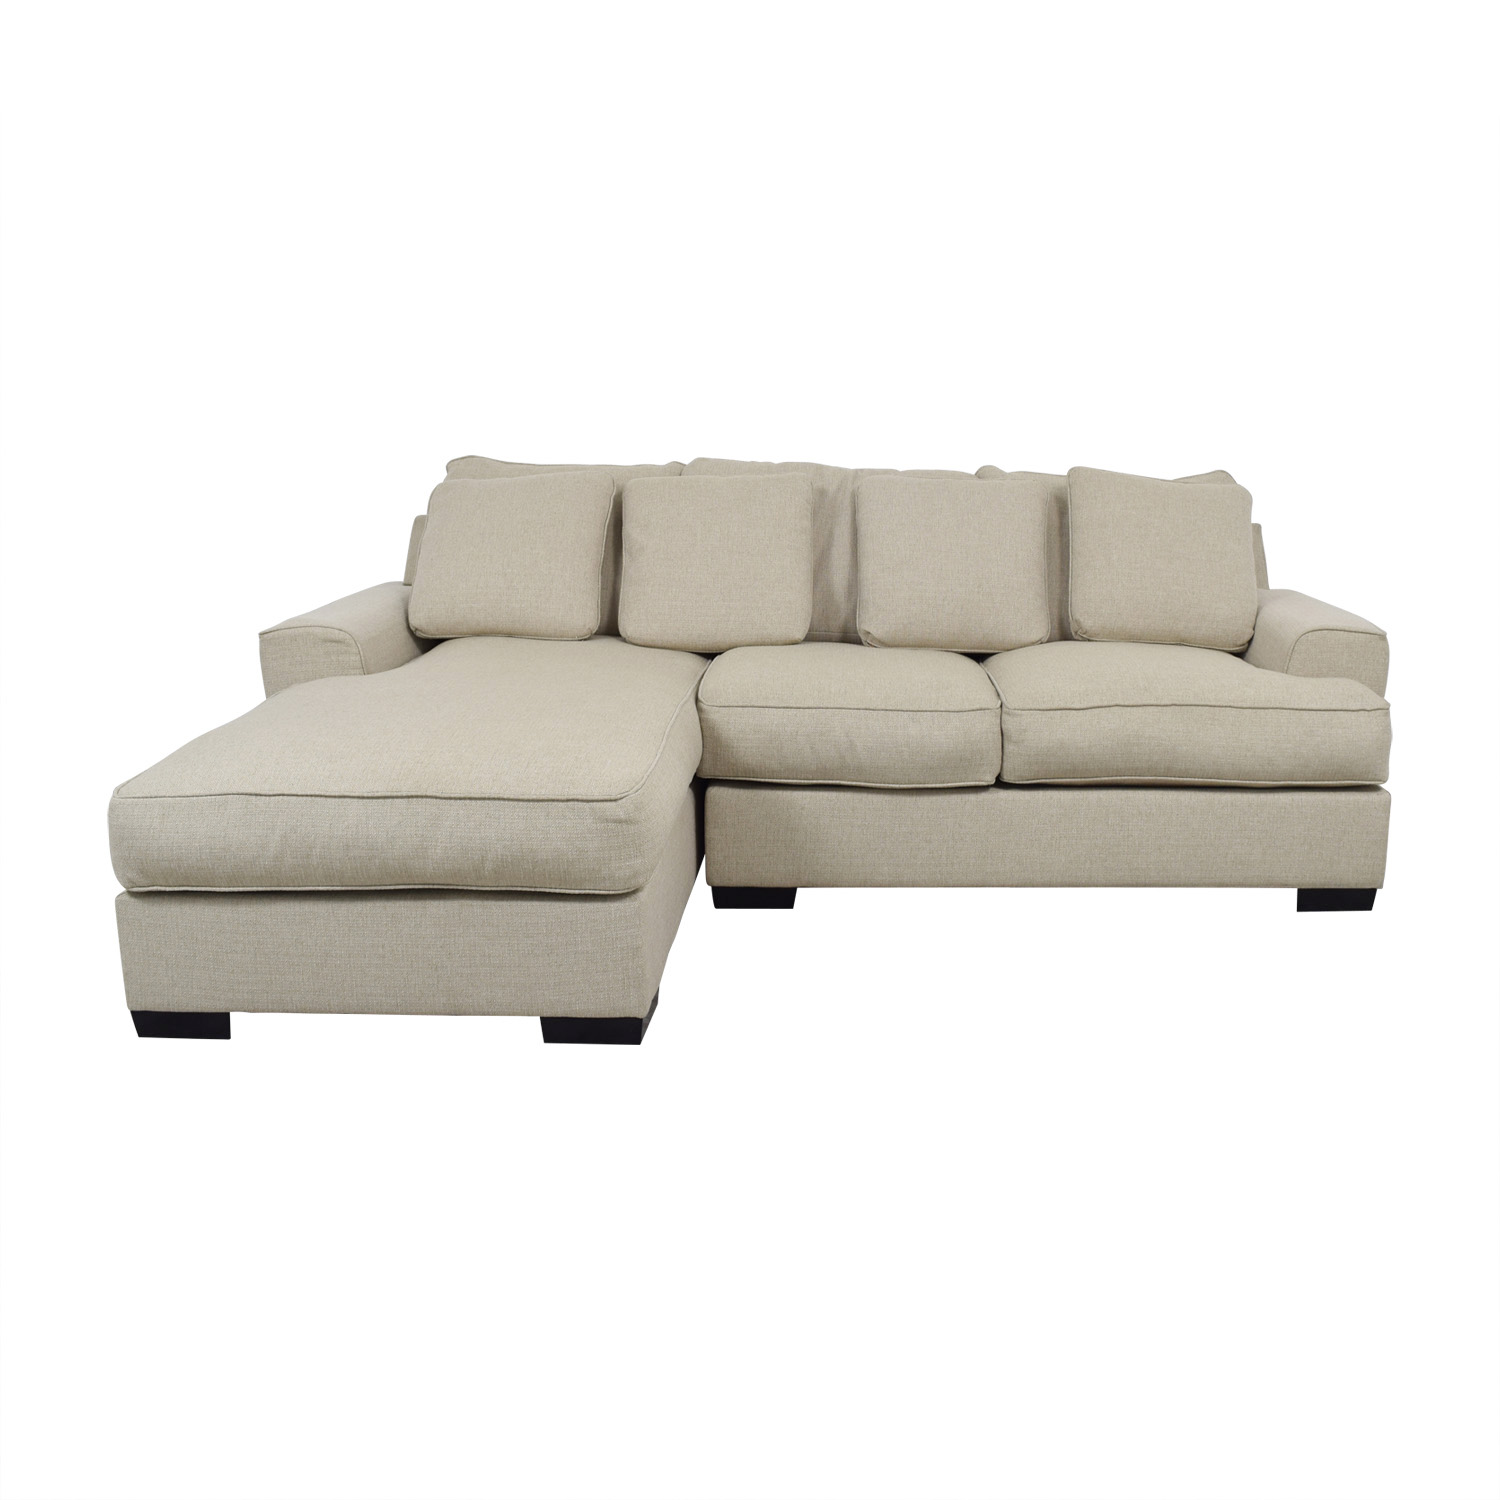 buy Macy's Ainsley Beige Chaise Sectional Macy's Sectionals